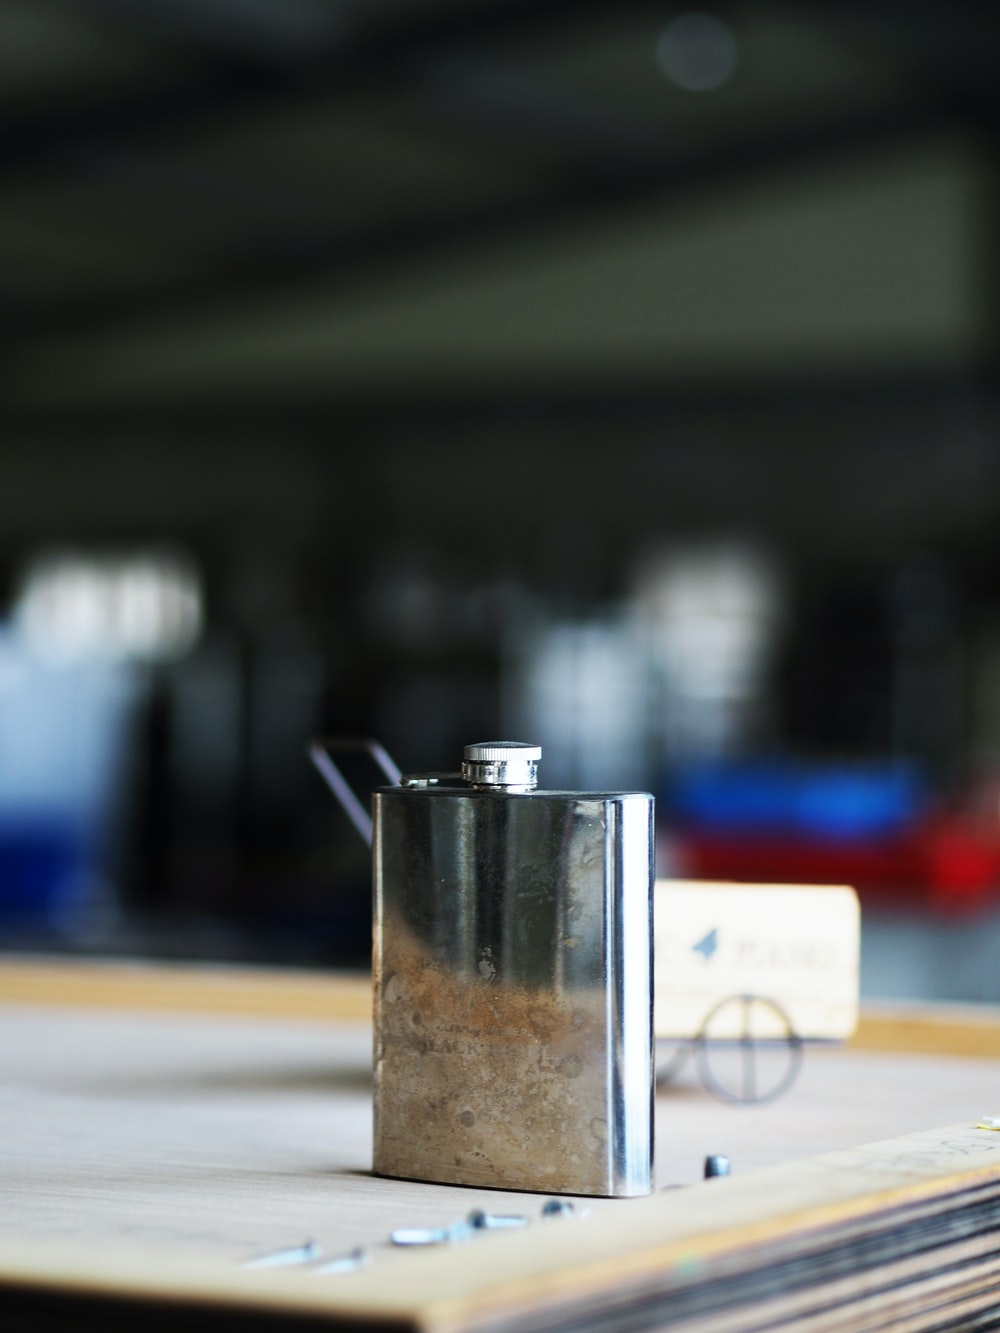 silver and black steel container on white table